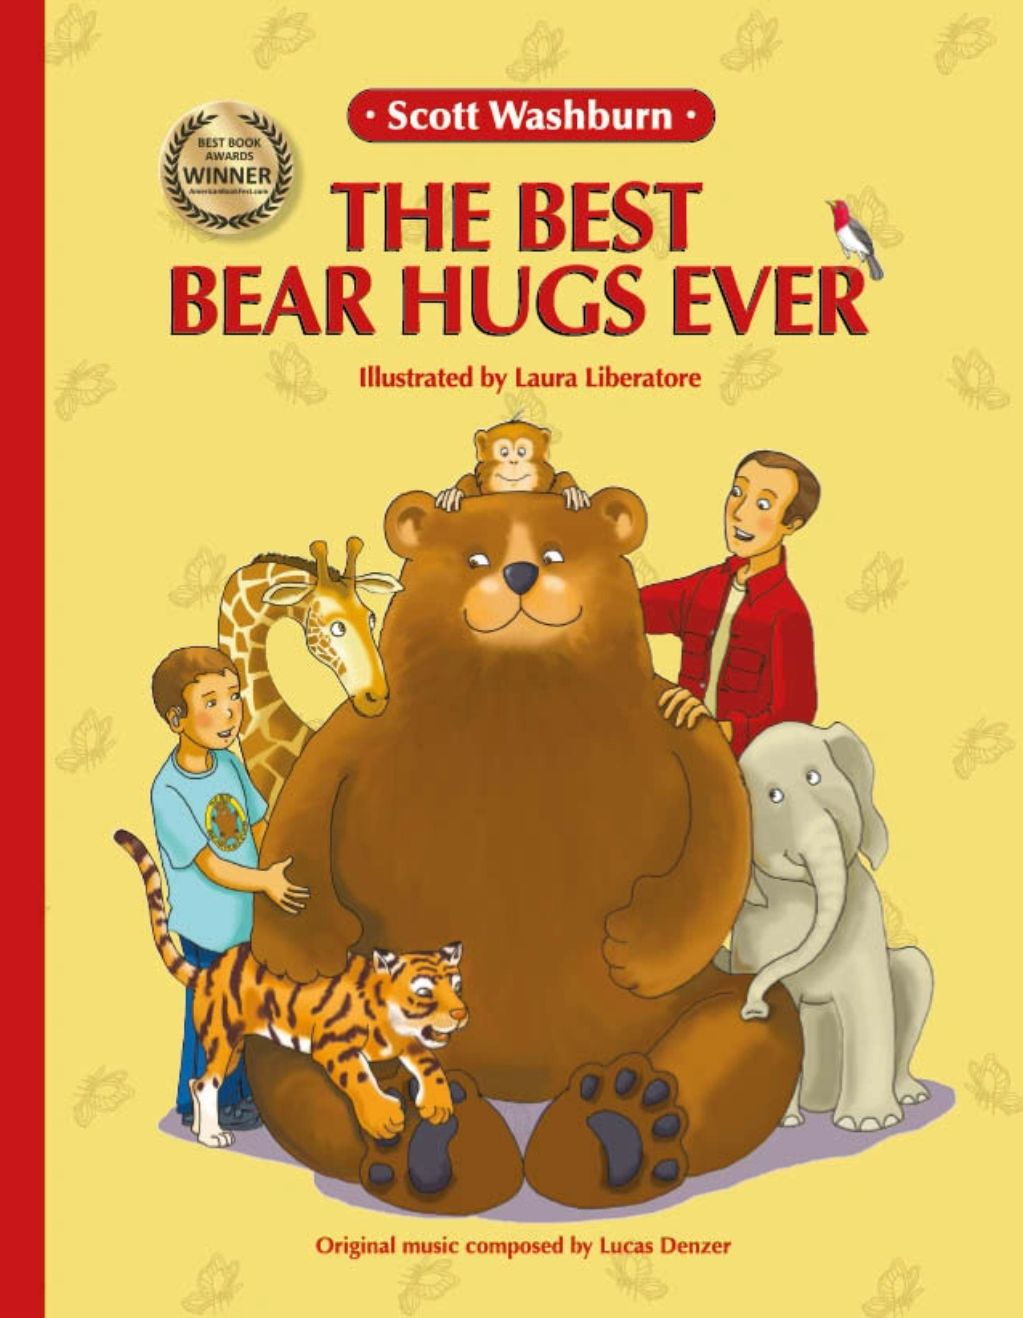 The Best Bear Hugs Ever, cambria christmas market, hug, family, top children's book,  zoo,  animal